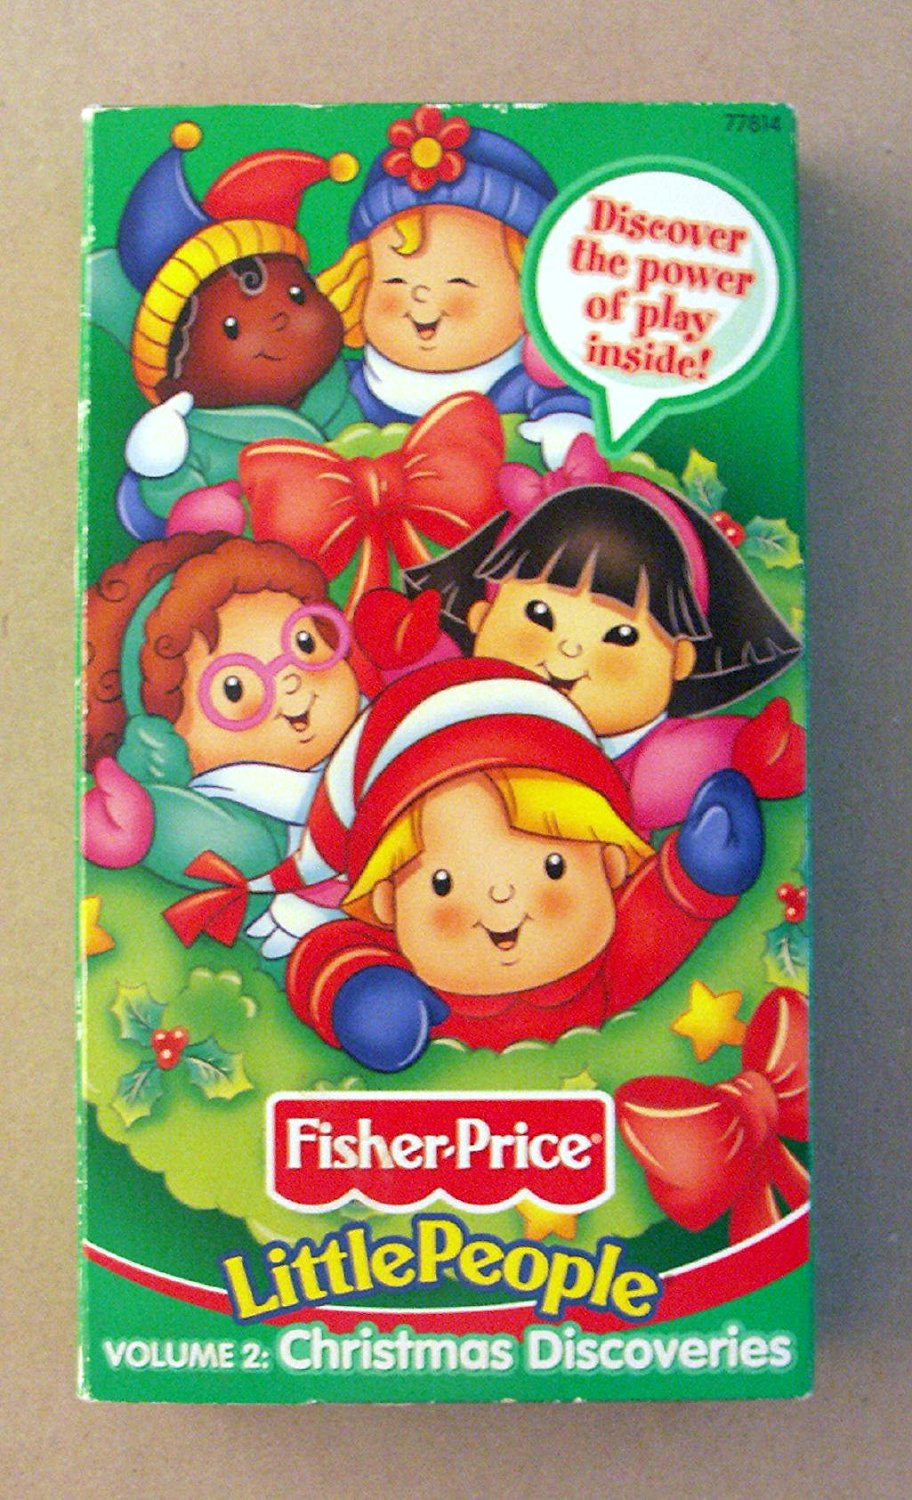 Christmas Discoveries (Little People)